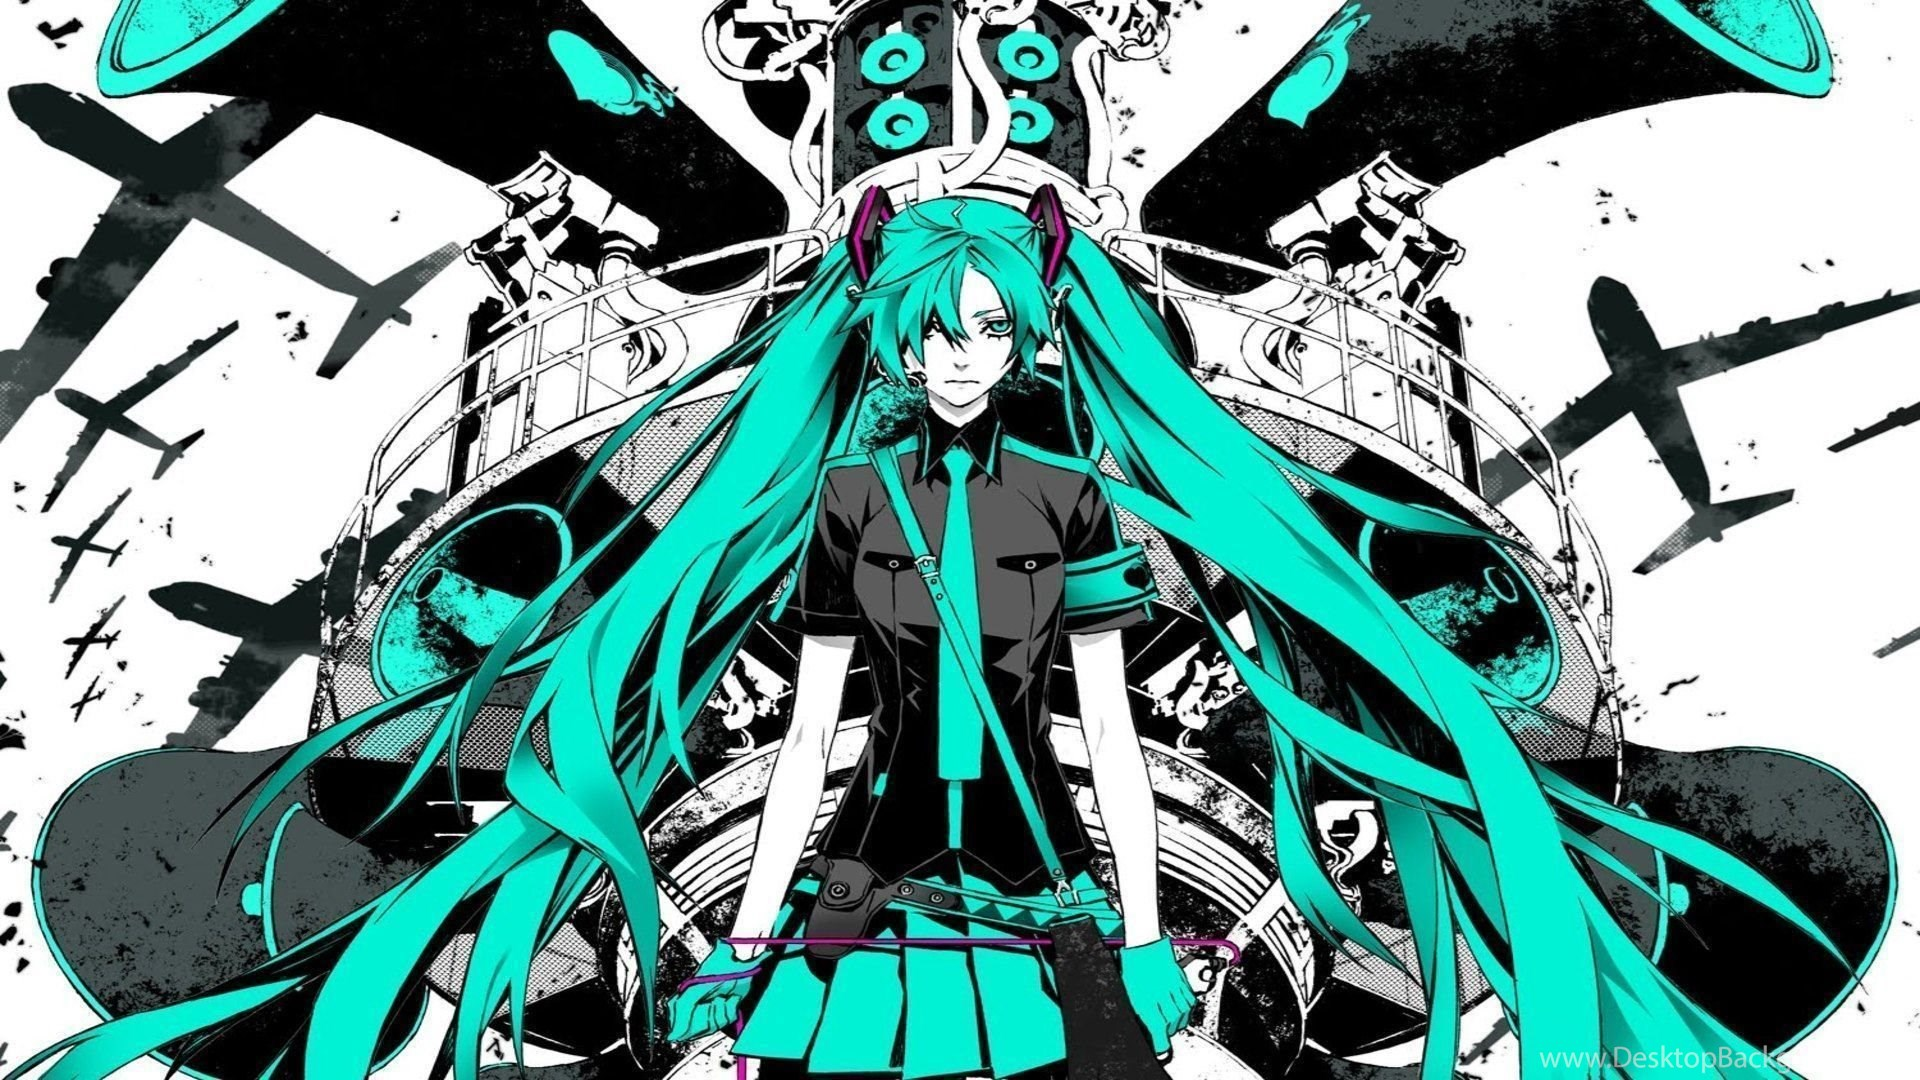 Cute Hatsune Miku Wallpapers Wallpaper Desktop Background